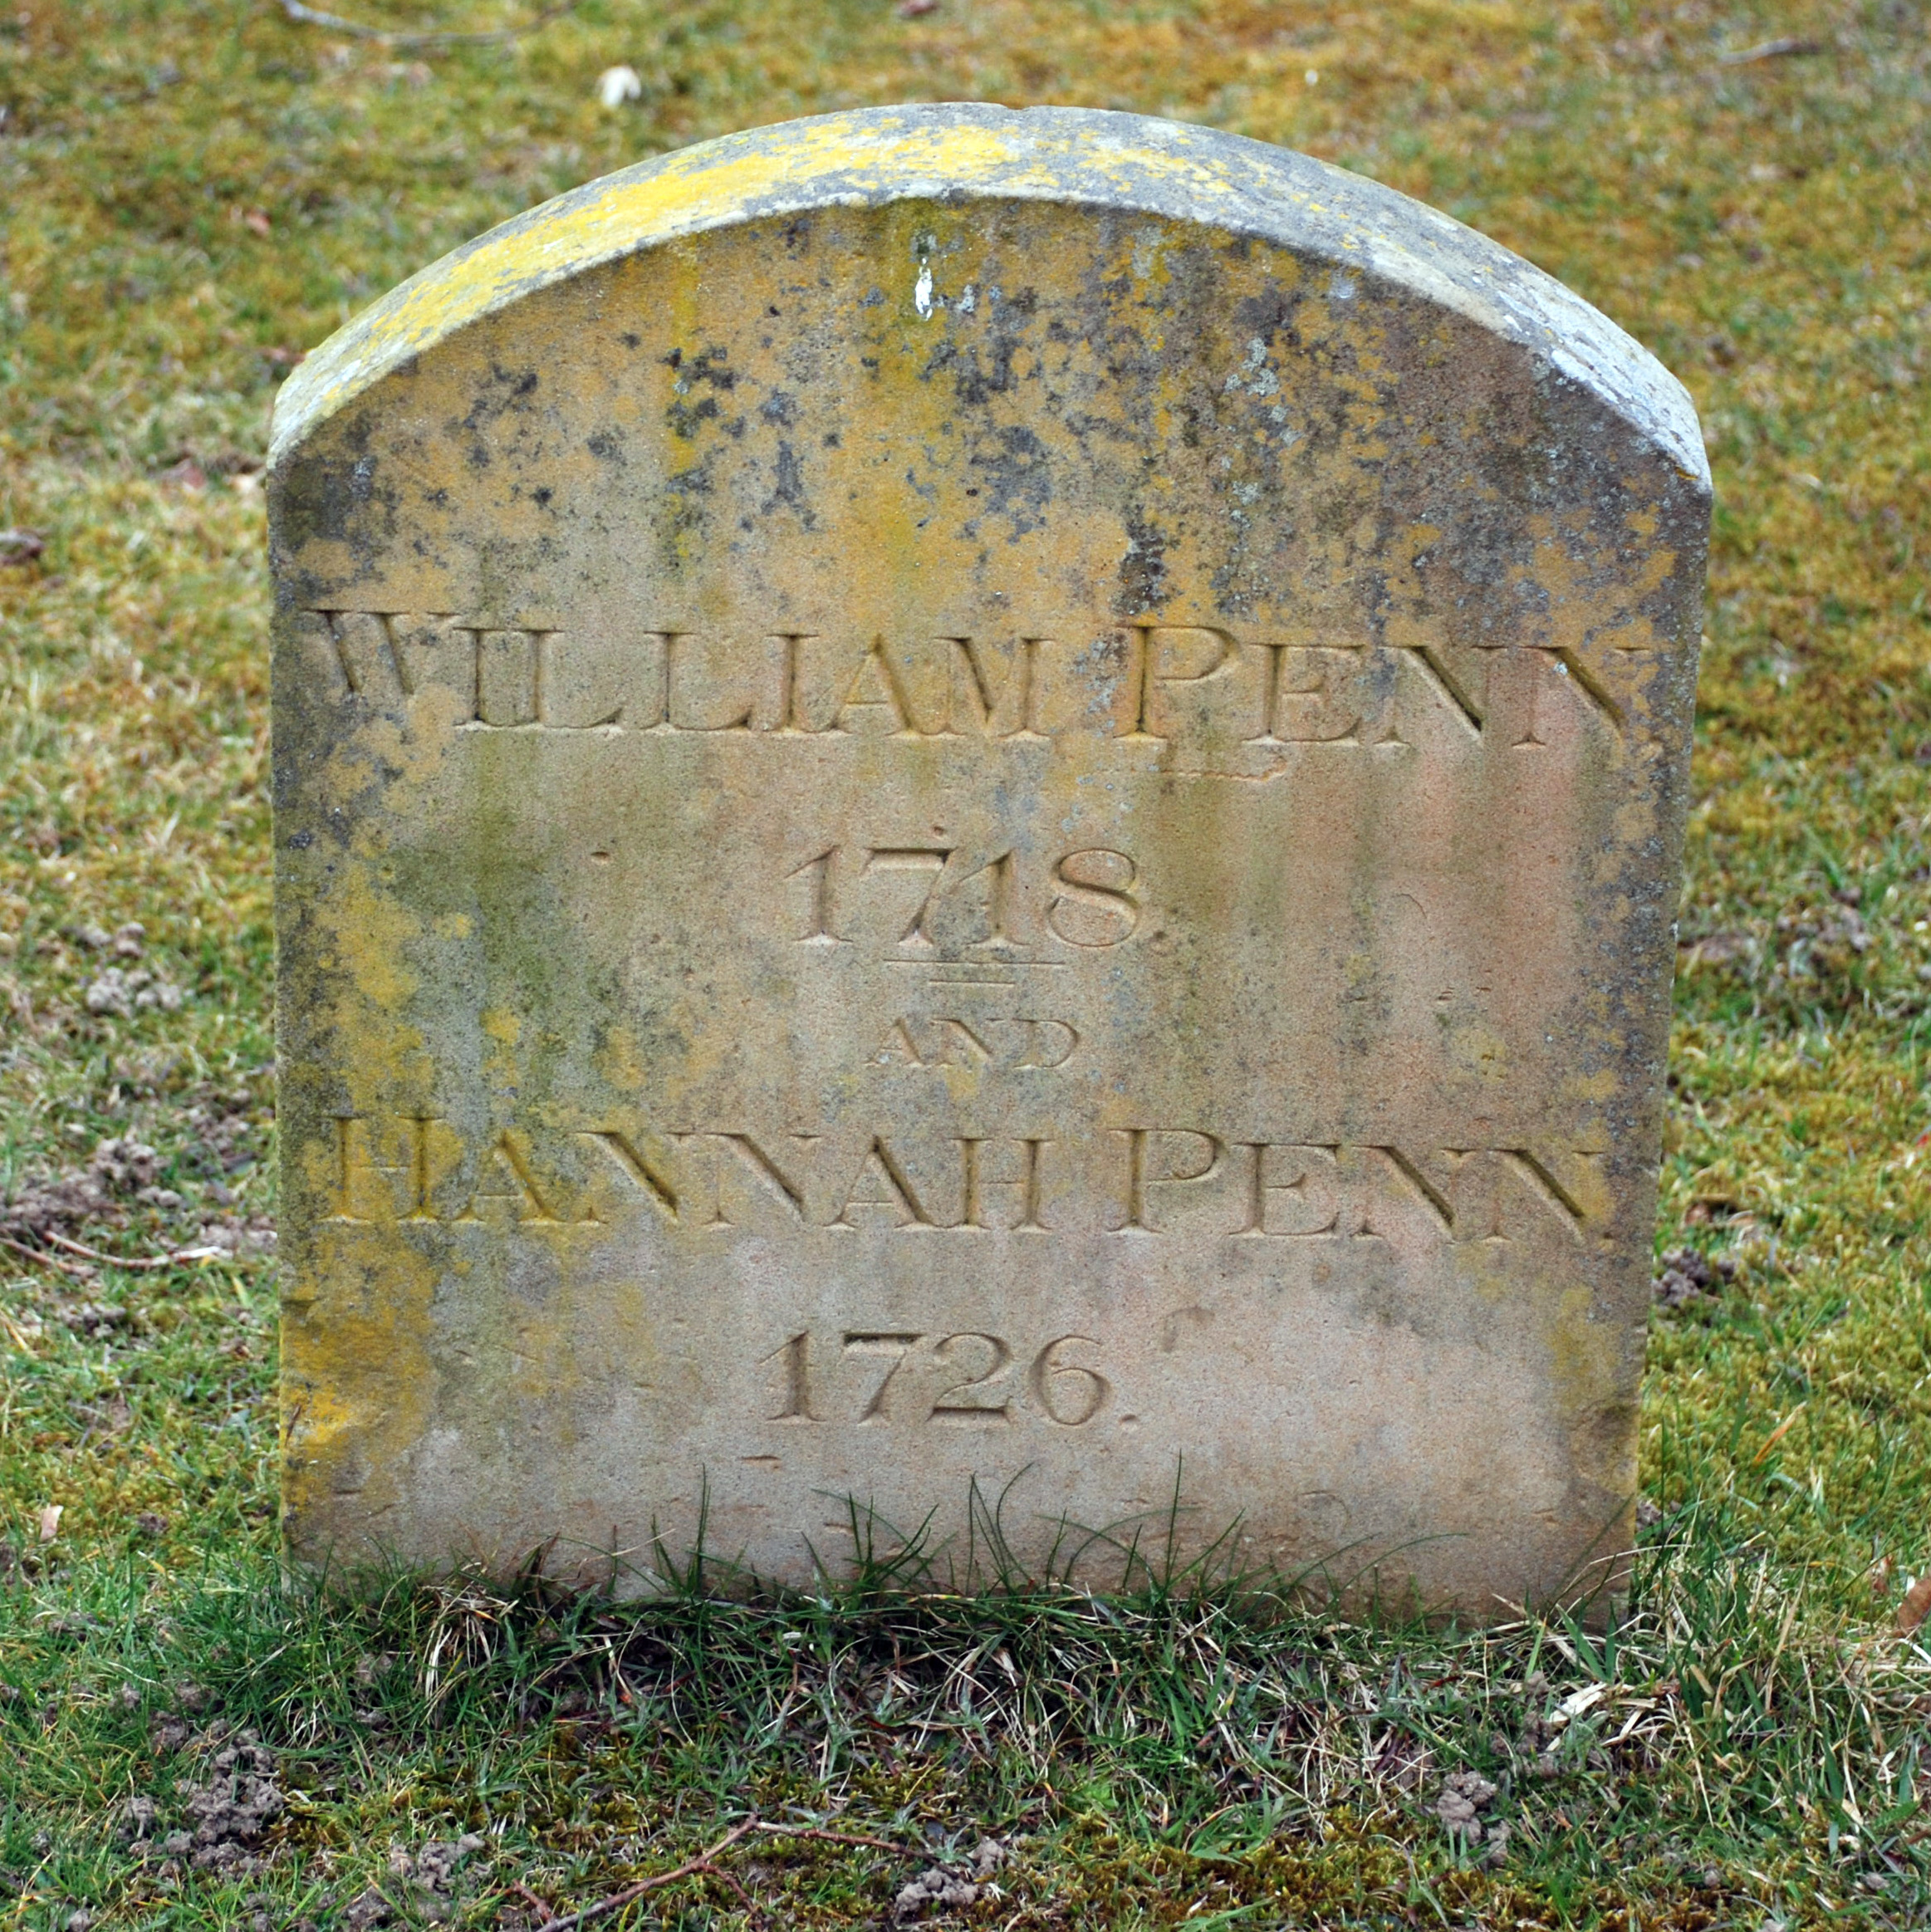 The grave of William and Hannah is located back in England, in Old Jordans Cemetery